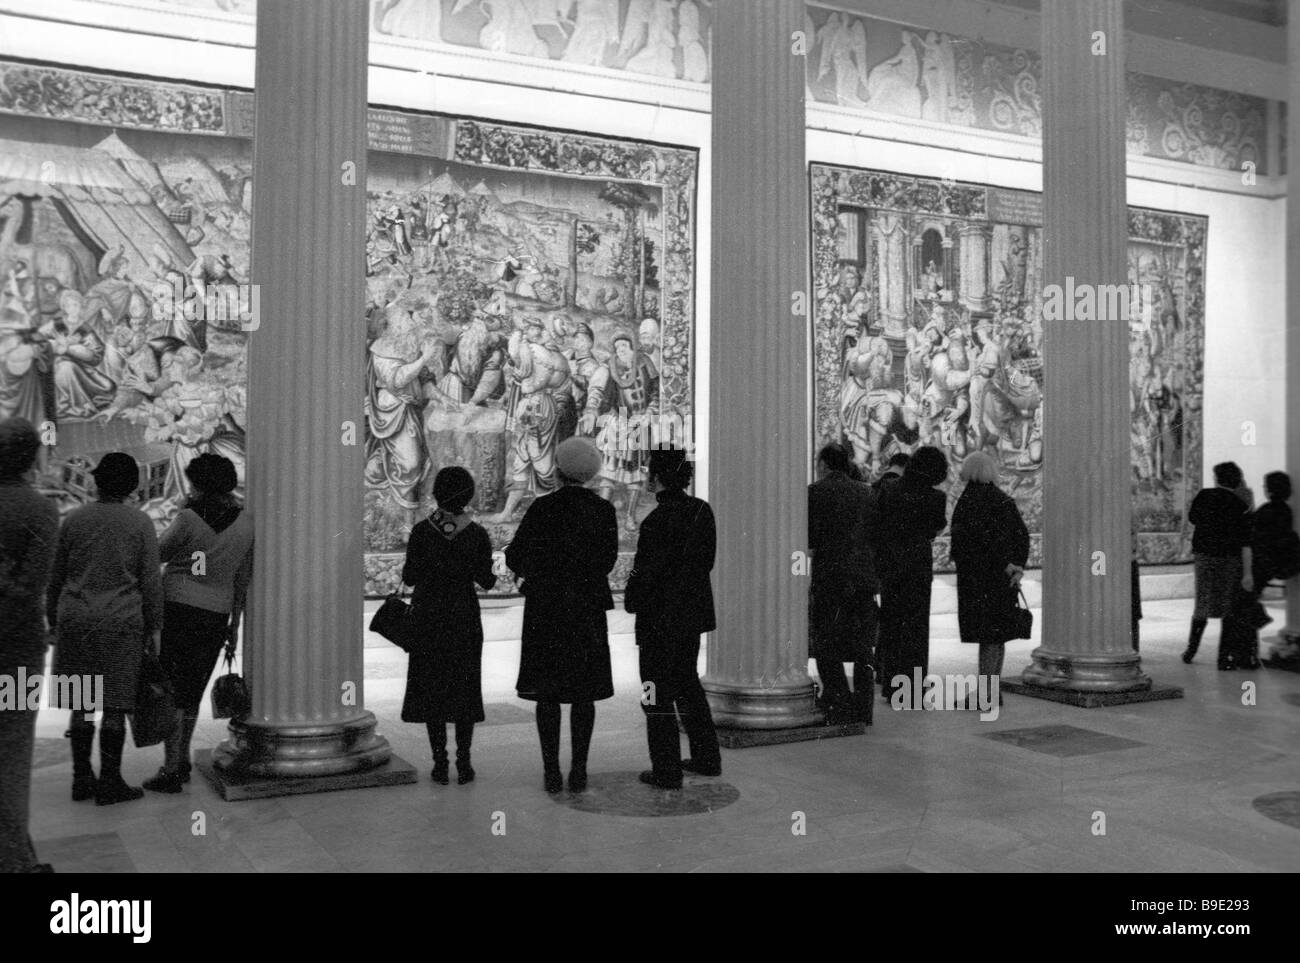 Observing the exposition of 16th 18th century Flemish tapestry in the Alexander Pushkin Museum of Fine Arts - Stock Image